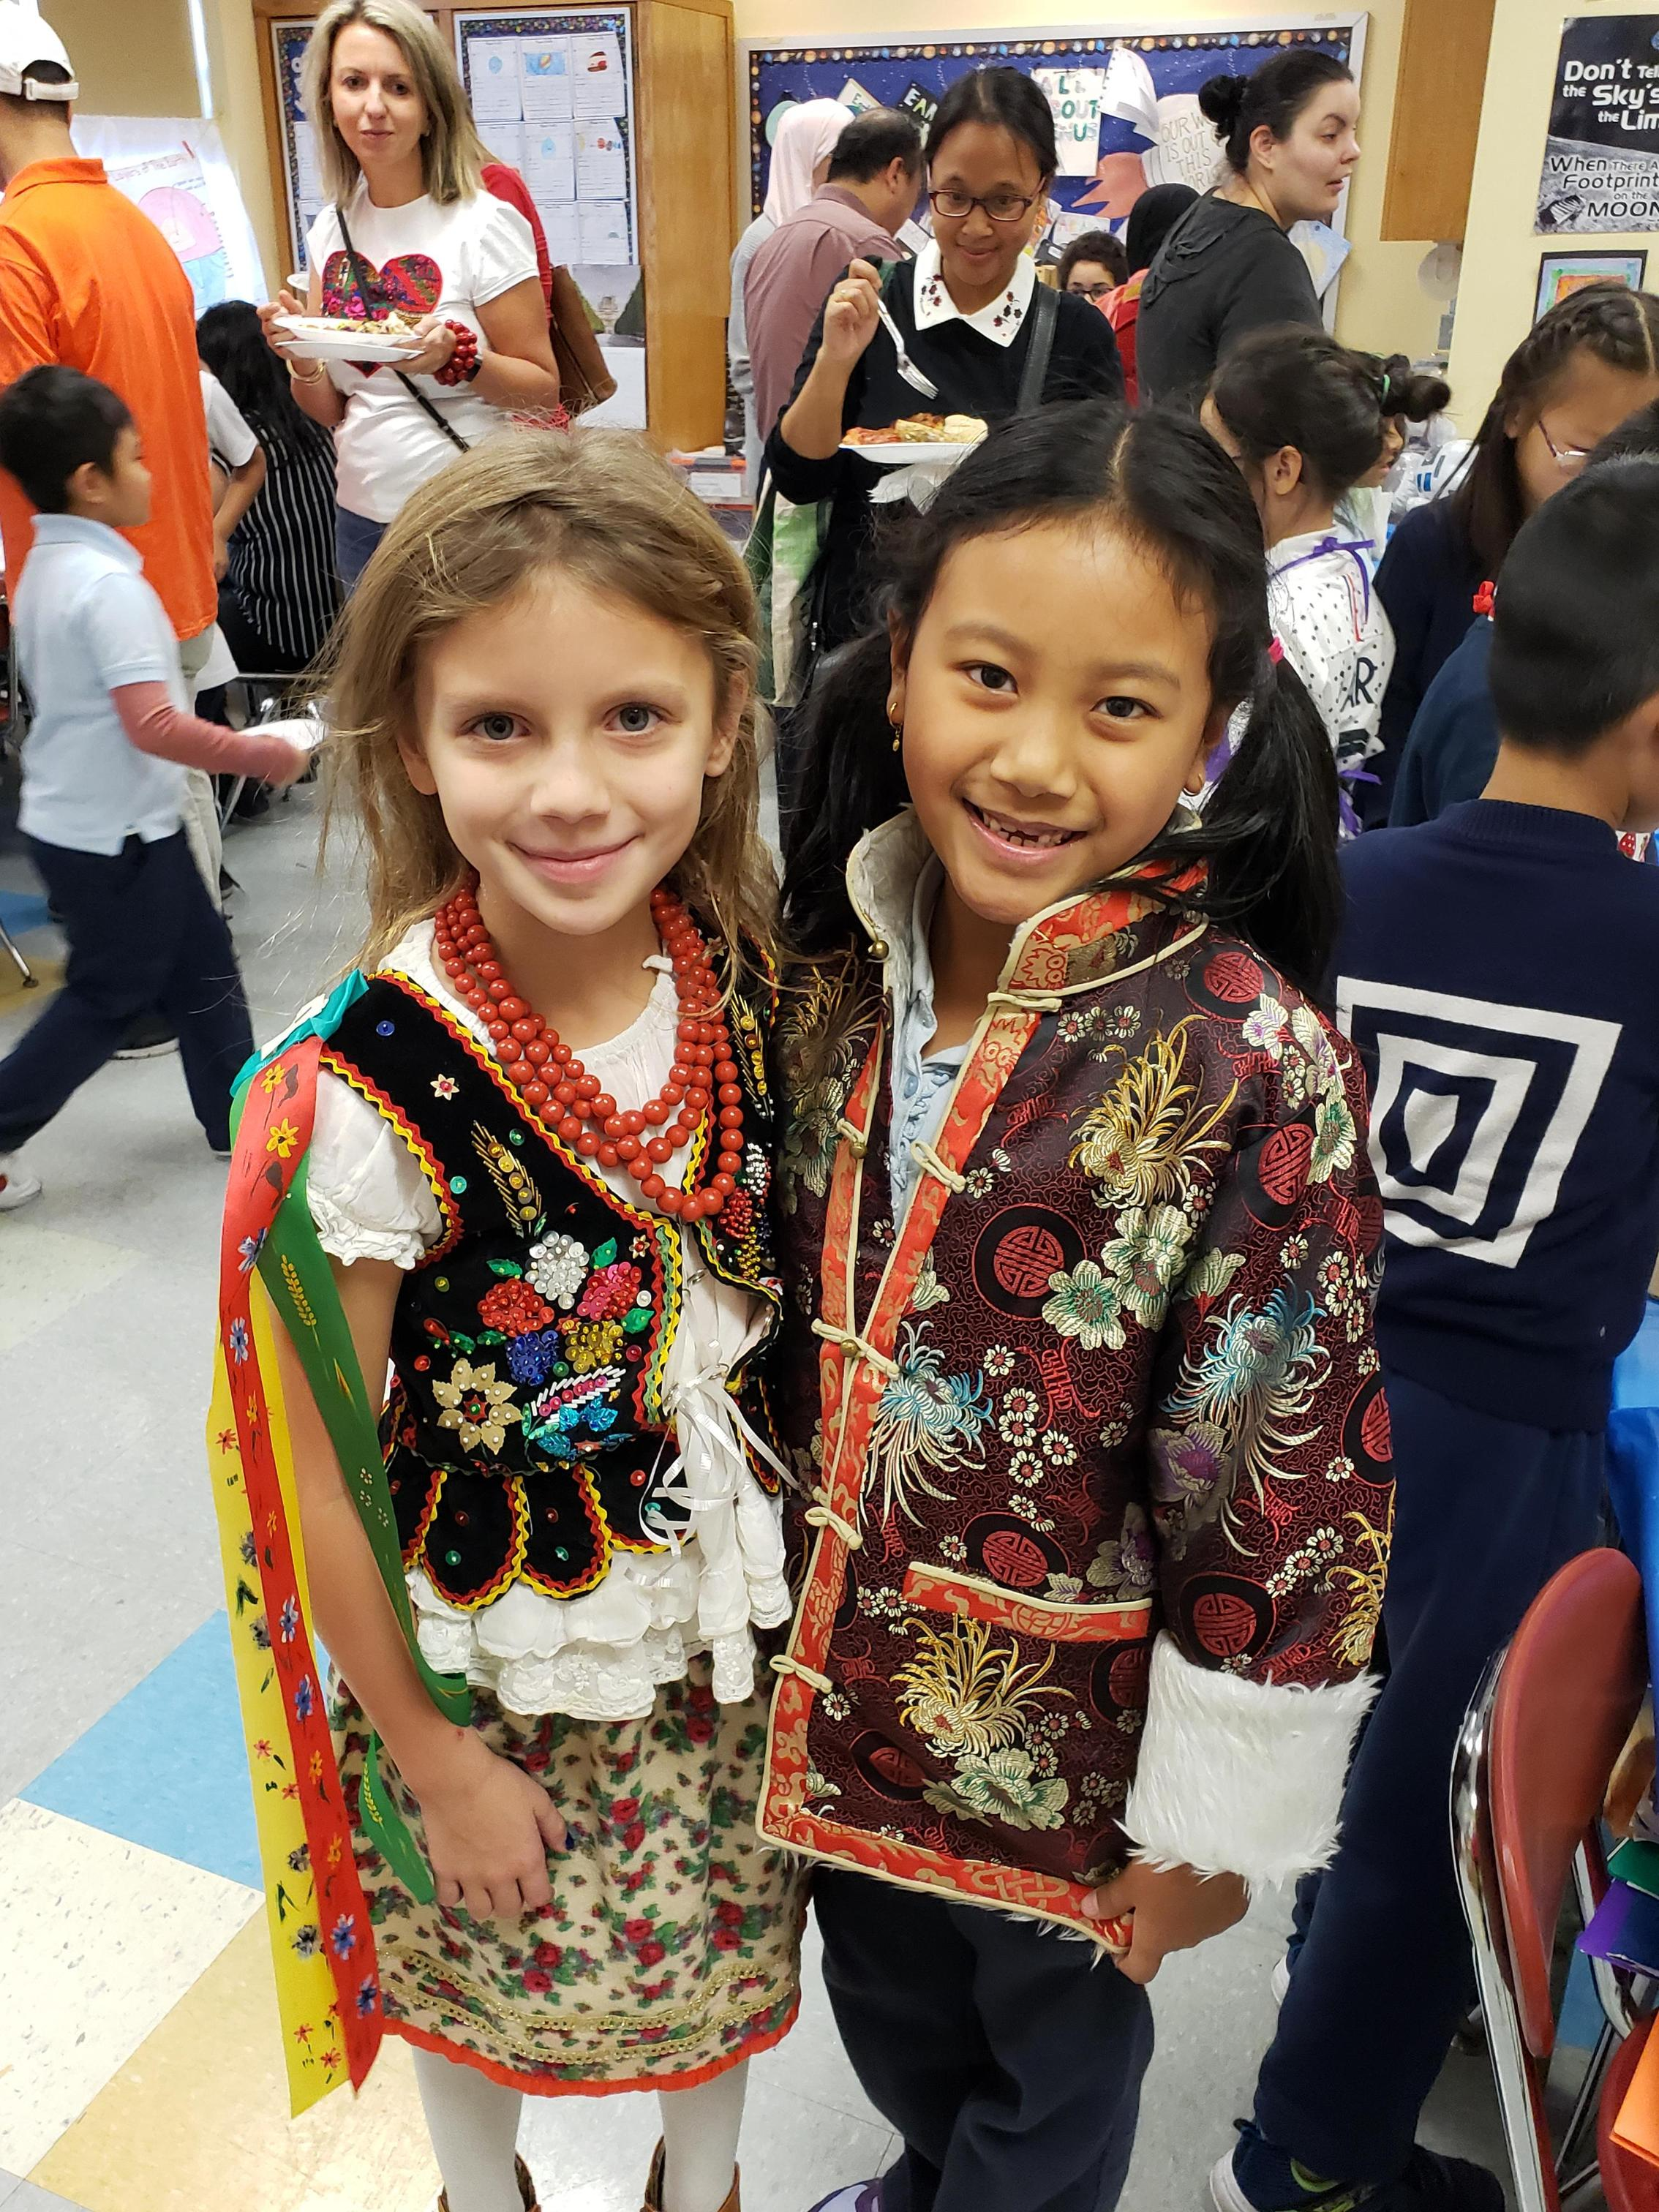 2 students in traditional garb